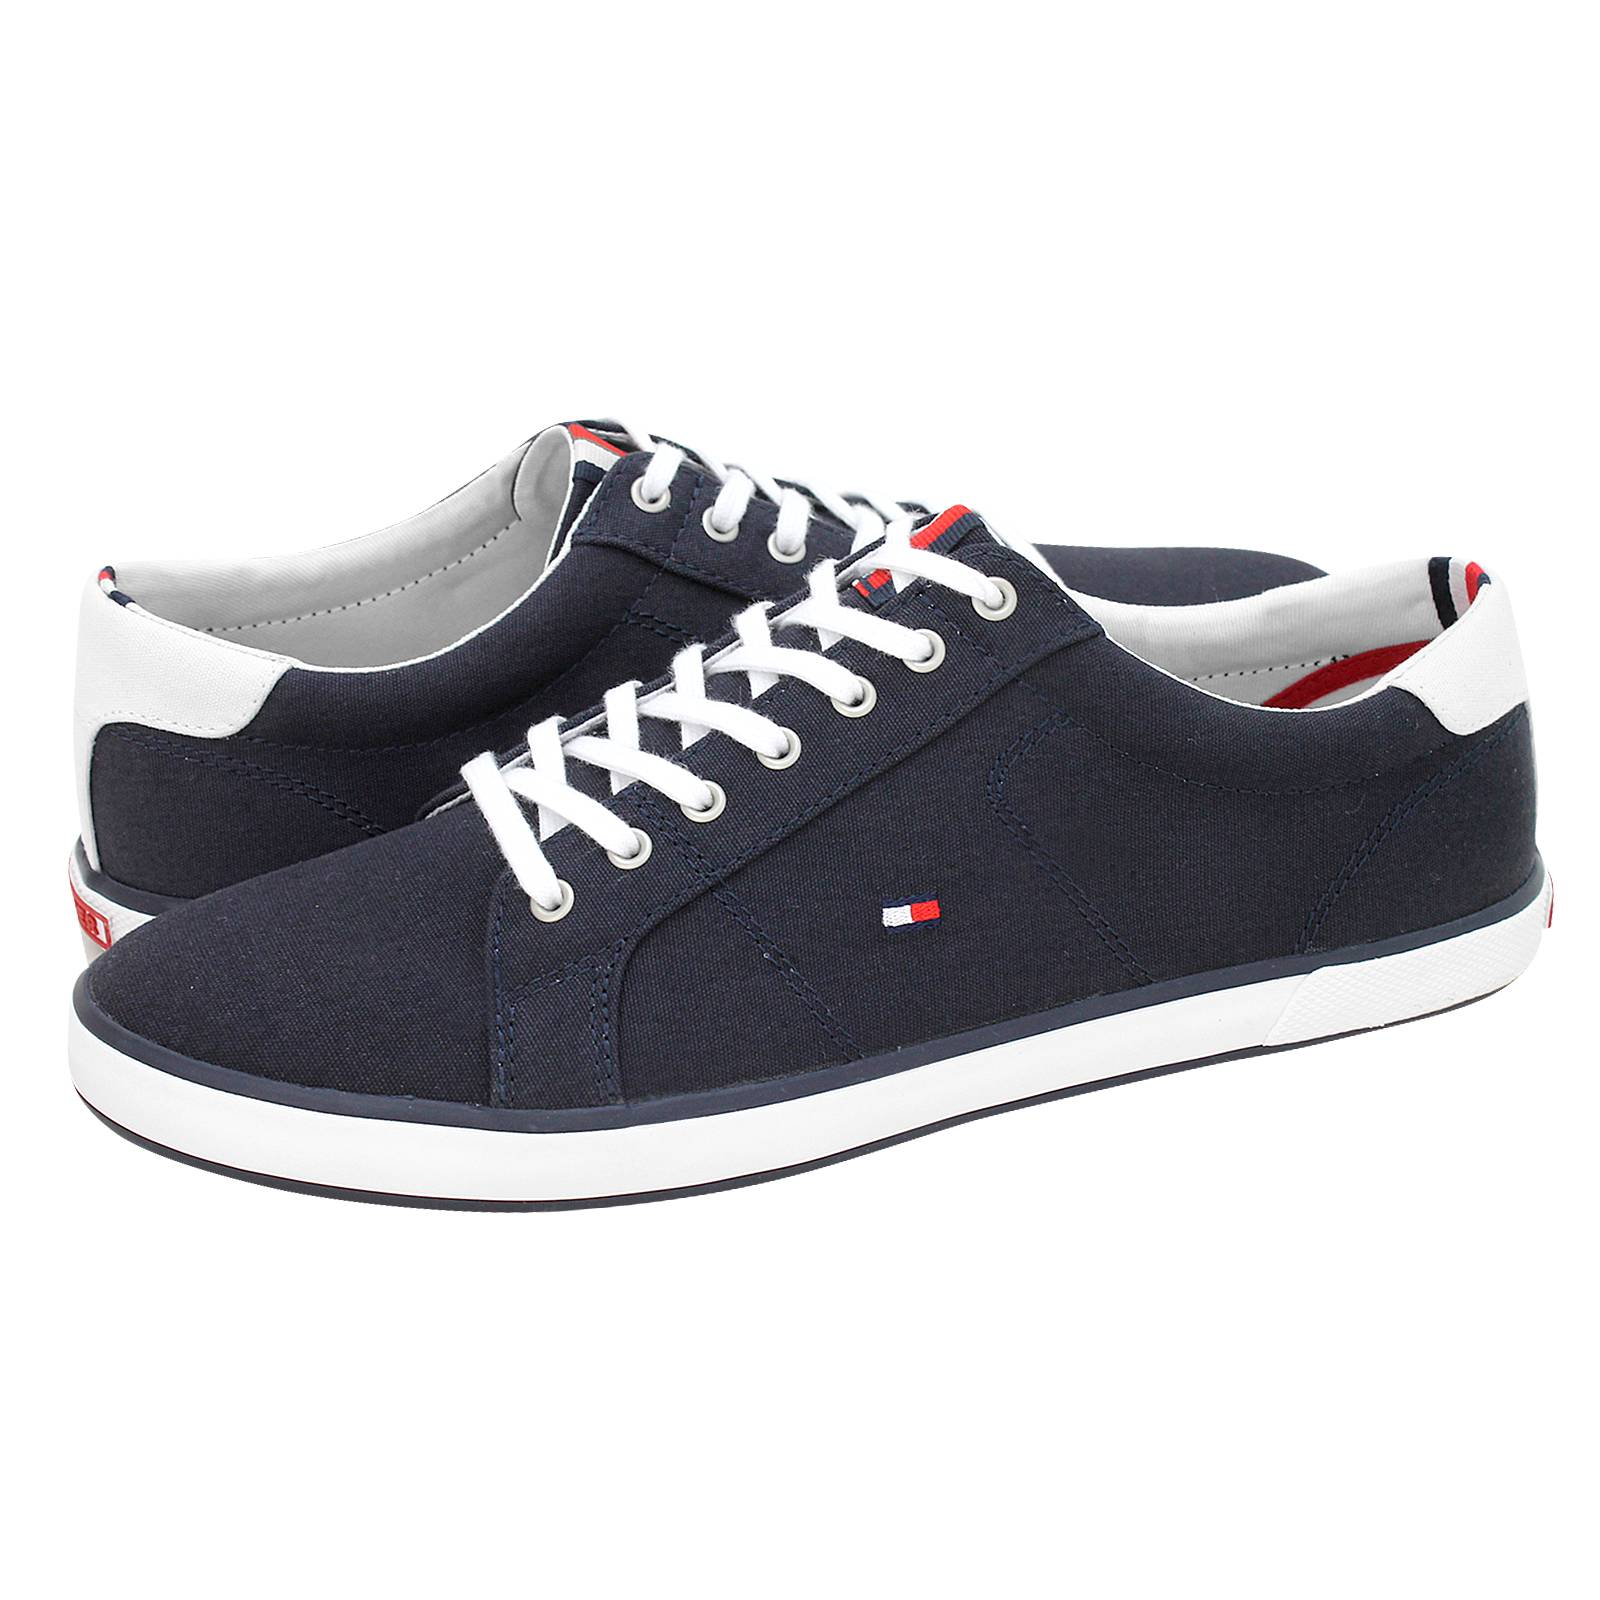 f998ca6e10830 Harlow 1D - Tommy Hilfiger Men s casual shoes made of fabric ...